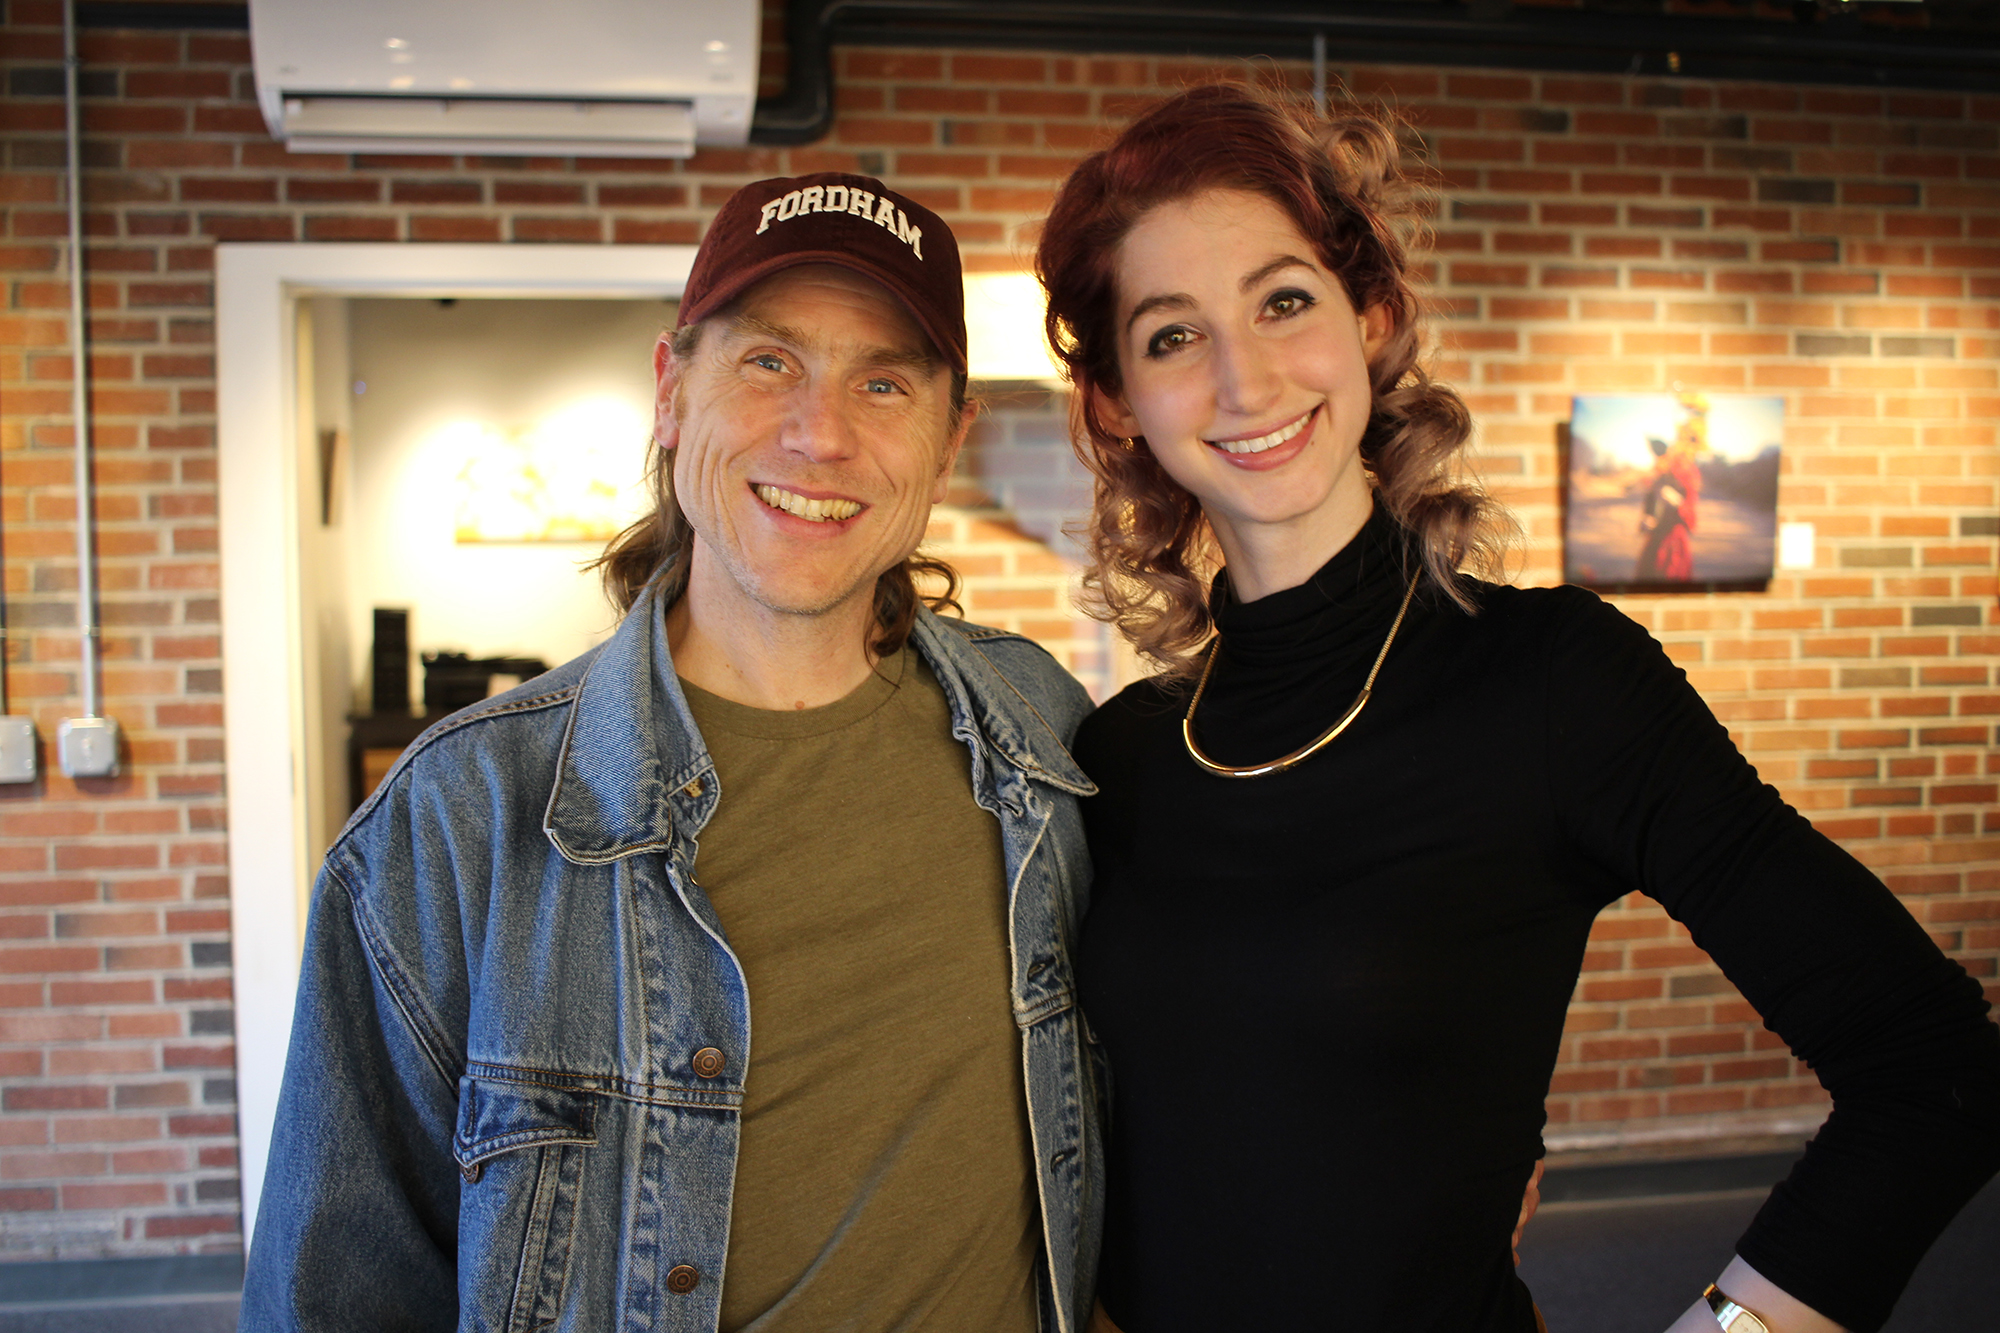 Tom Duprey with Geena Matuson at her solo show reception at Medfield TV. April, 2016.